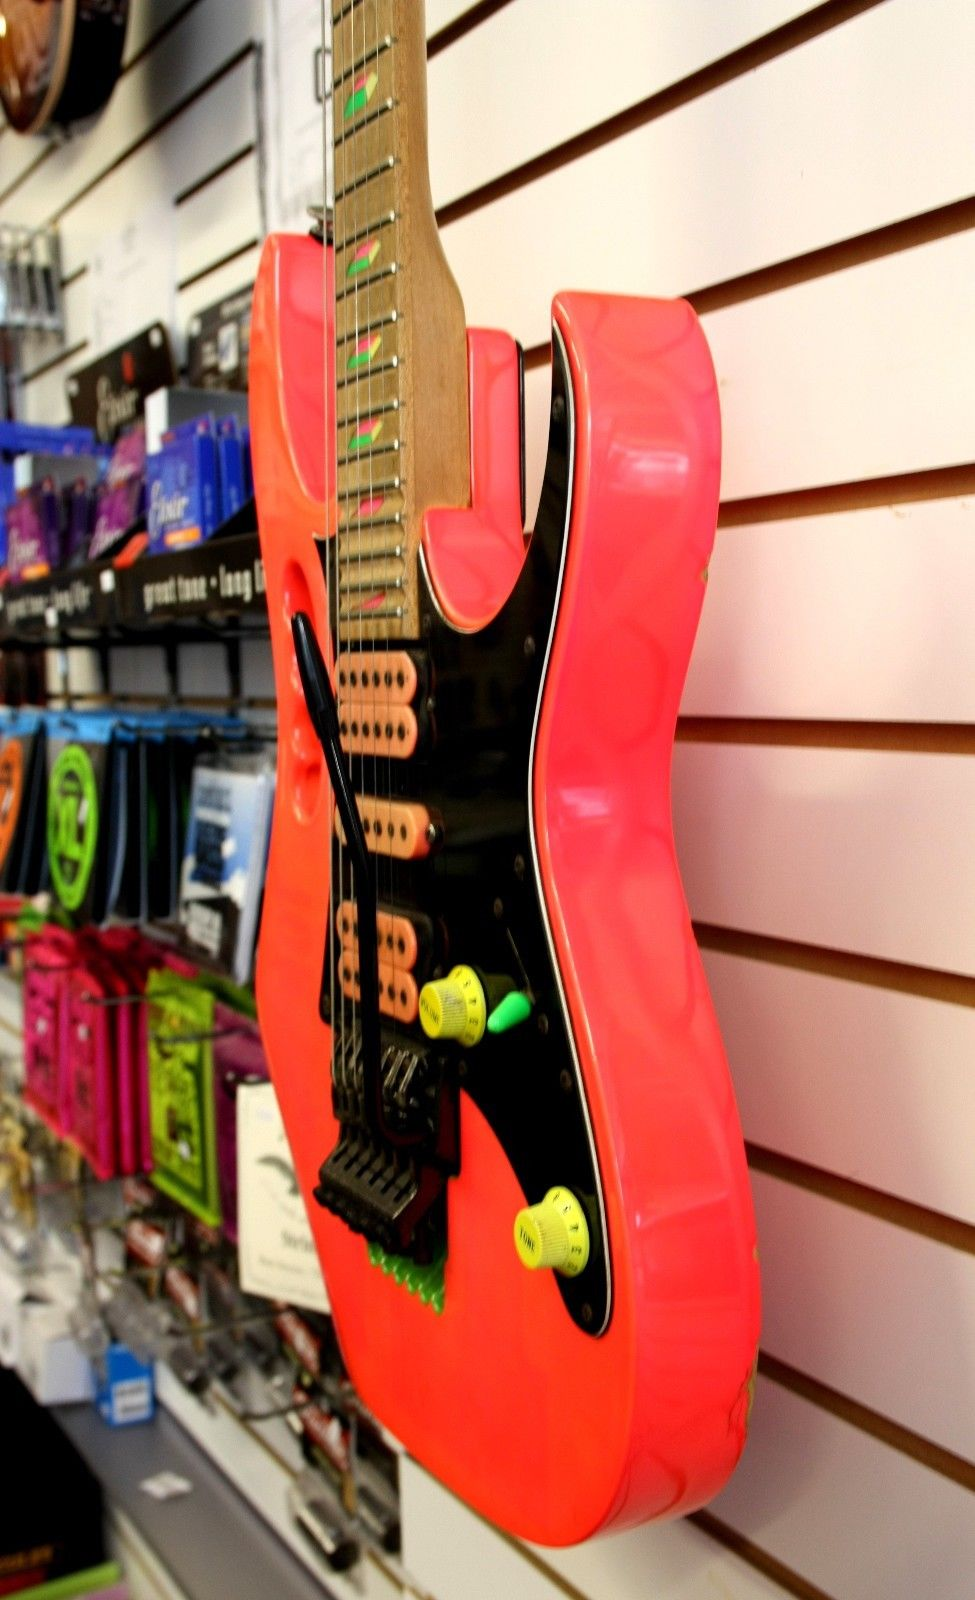 USED - Ibanez JEM777SK Electric Guitar Shocking Pink (1988 Model)